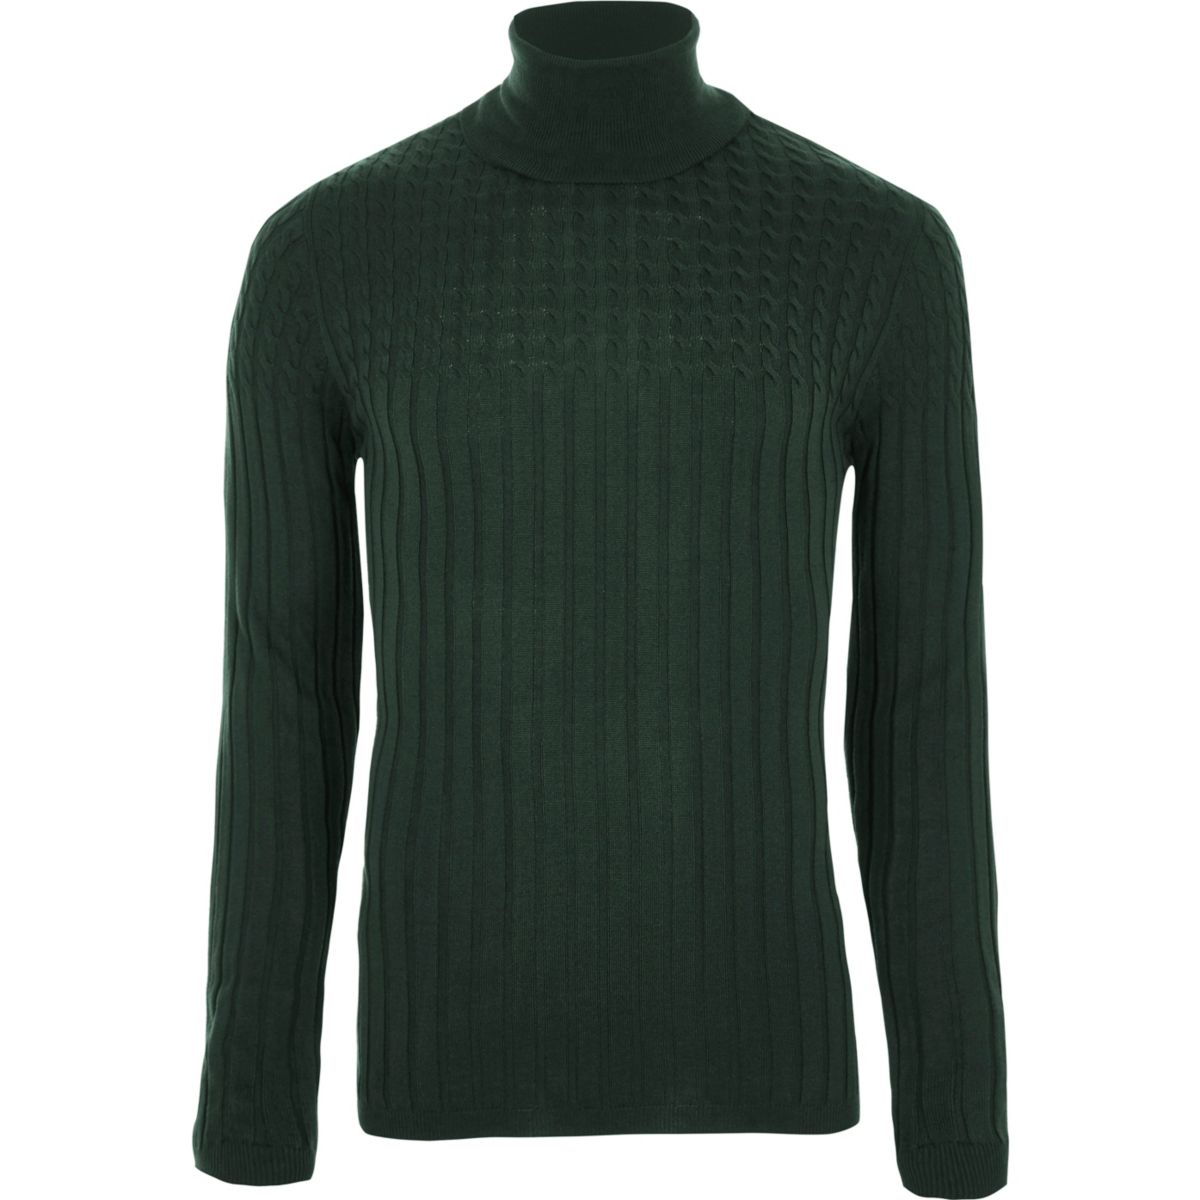 Dark green cable knit roll neck muscle jumper